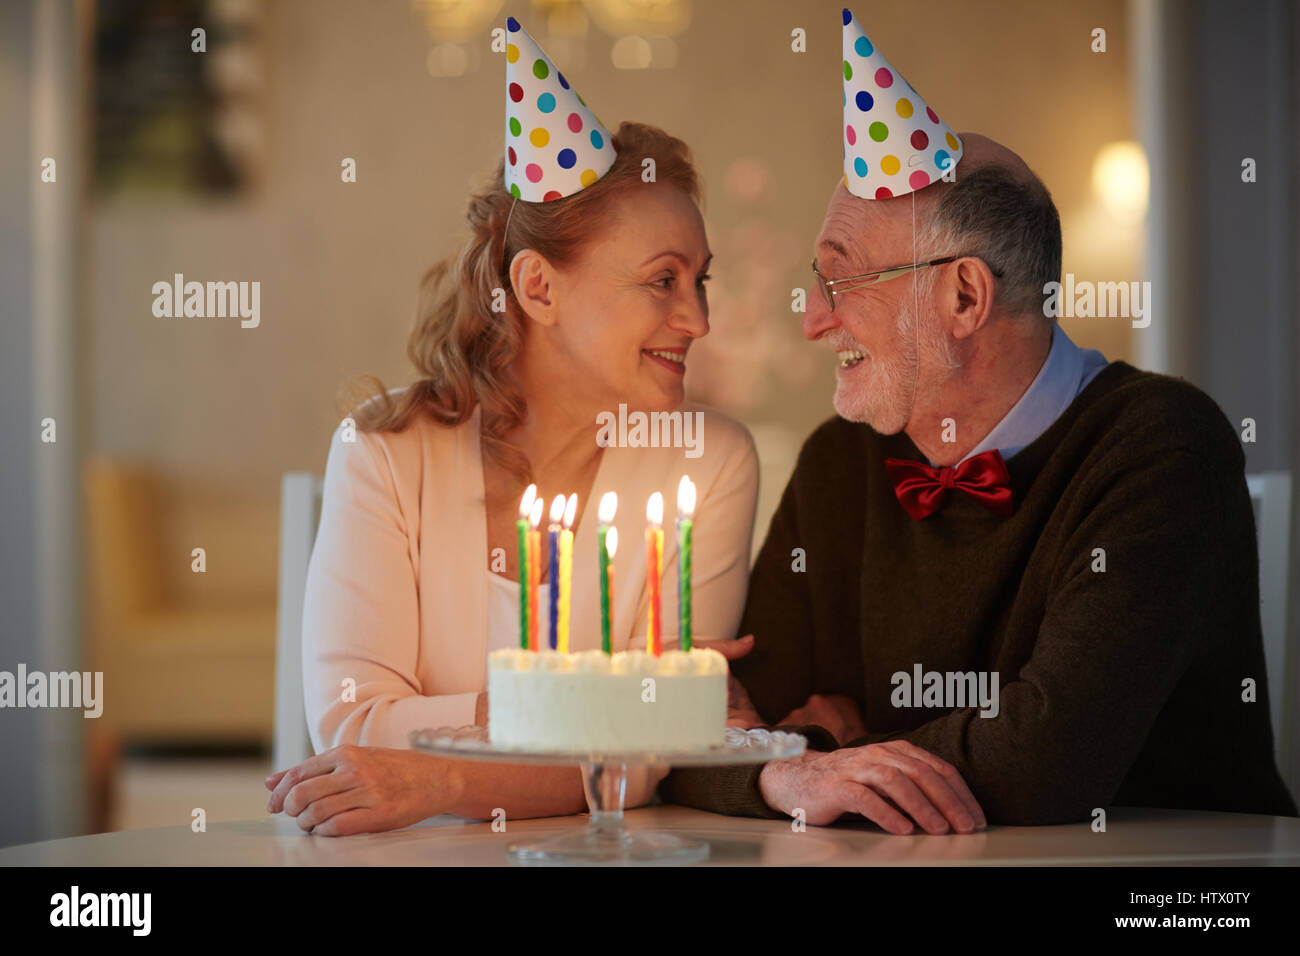 Portrait of loving senior couple celebrating birthday together sitting at table with cake and wearing party hats - Stock Image